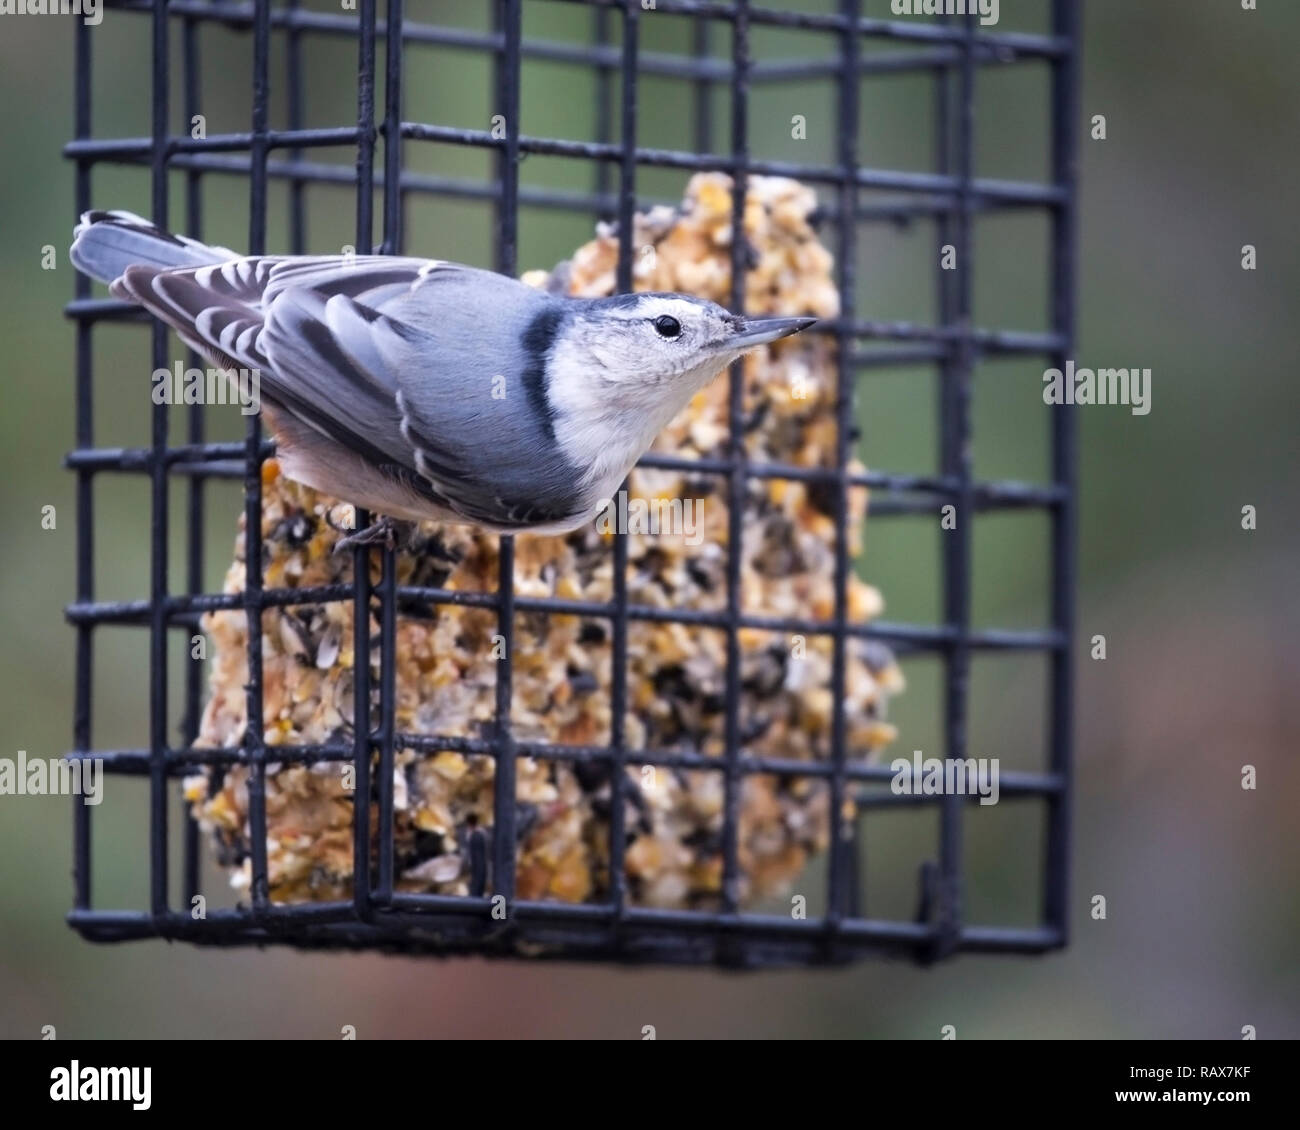 White breasted nuthatch feeding from backyard feeder (Sitta carolinensis) - Stock Image